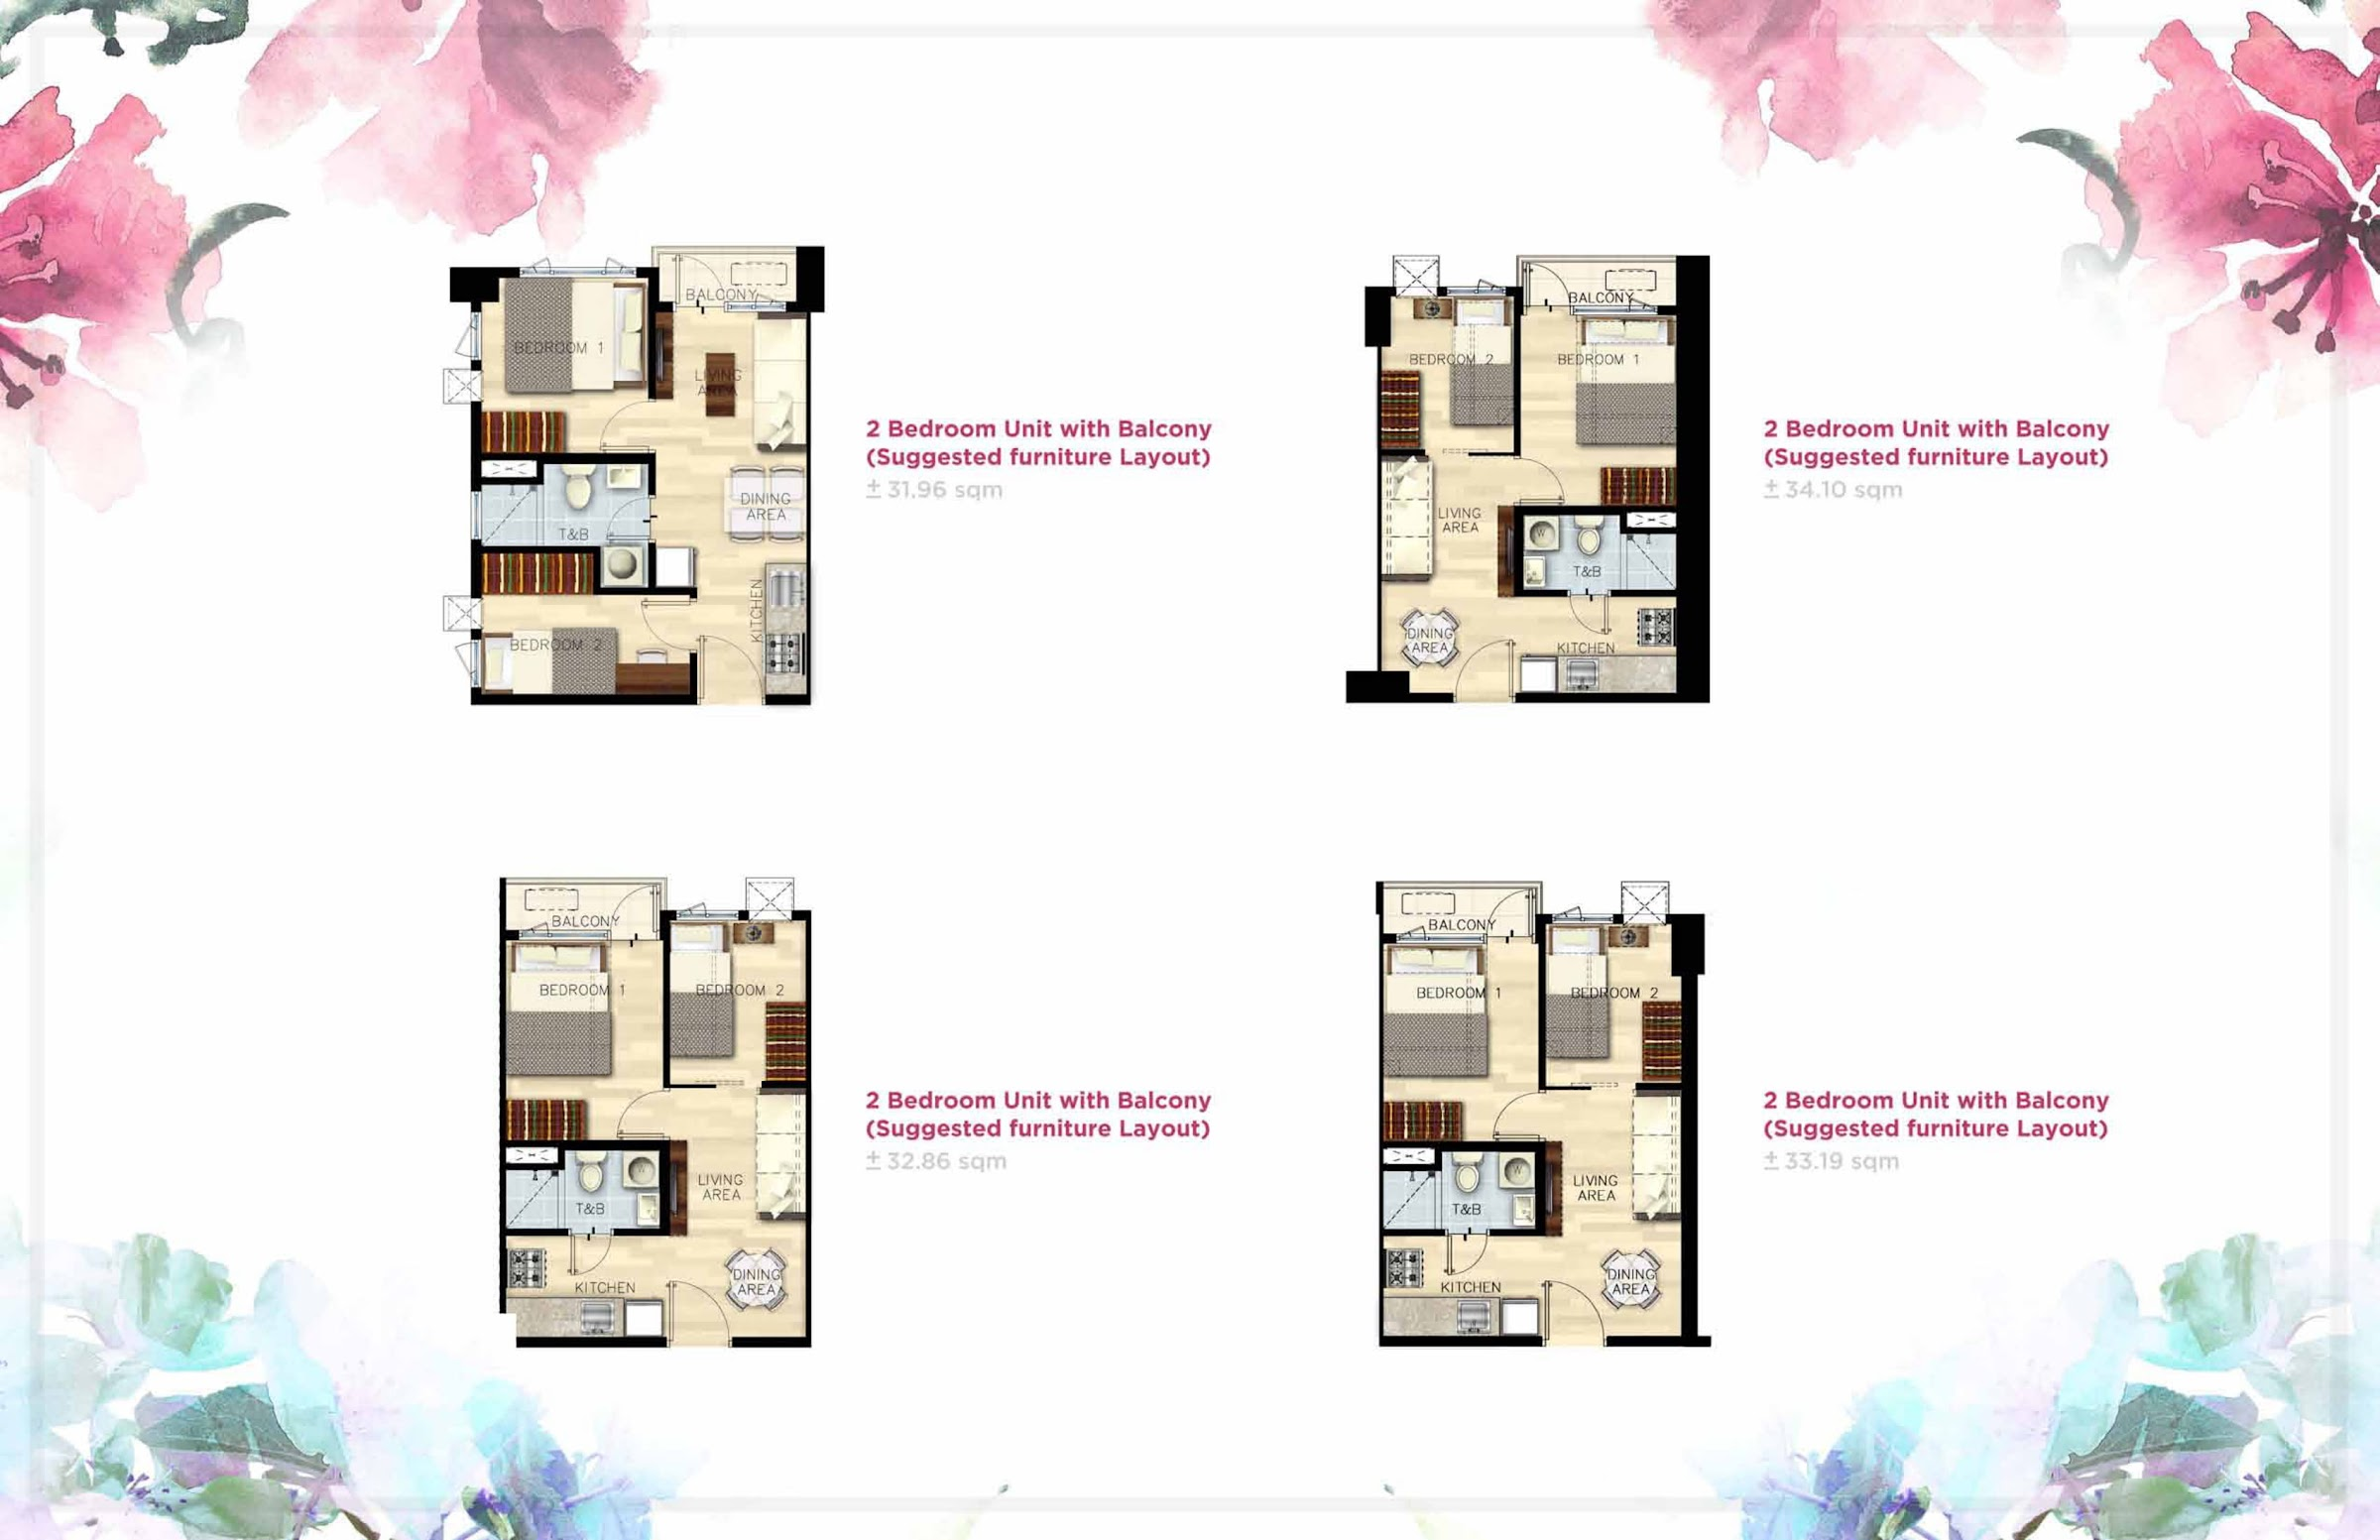 Bloom Residences, Sucat, Paranaque City 2 bedroom unit plan